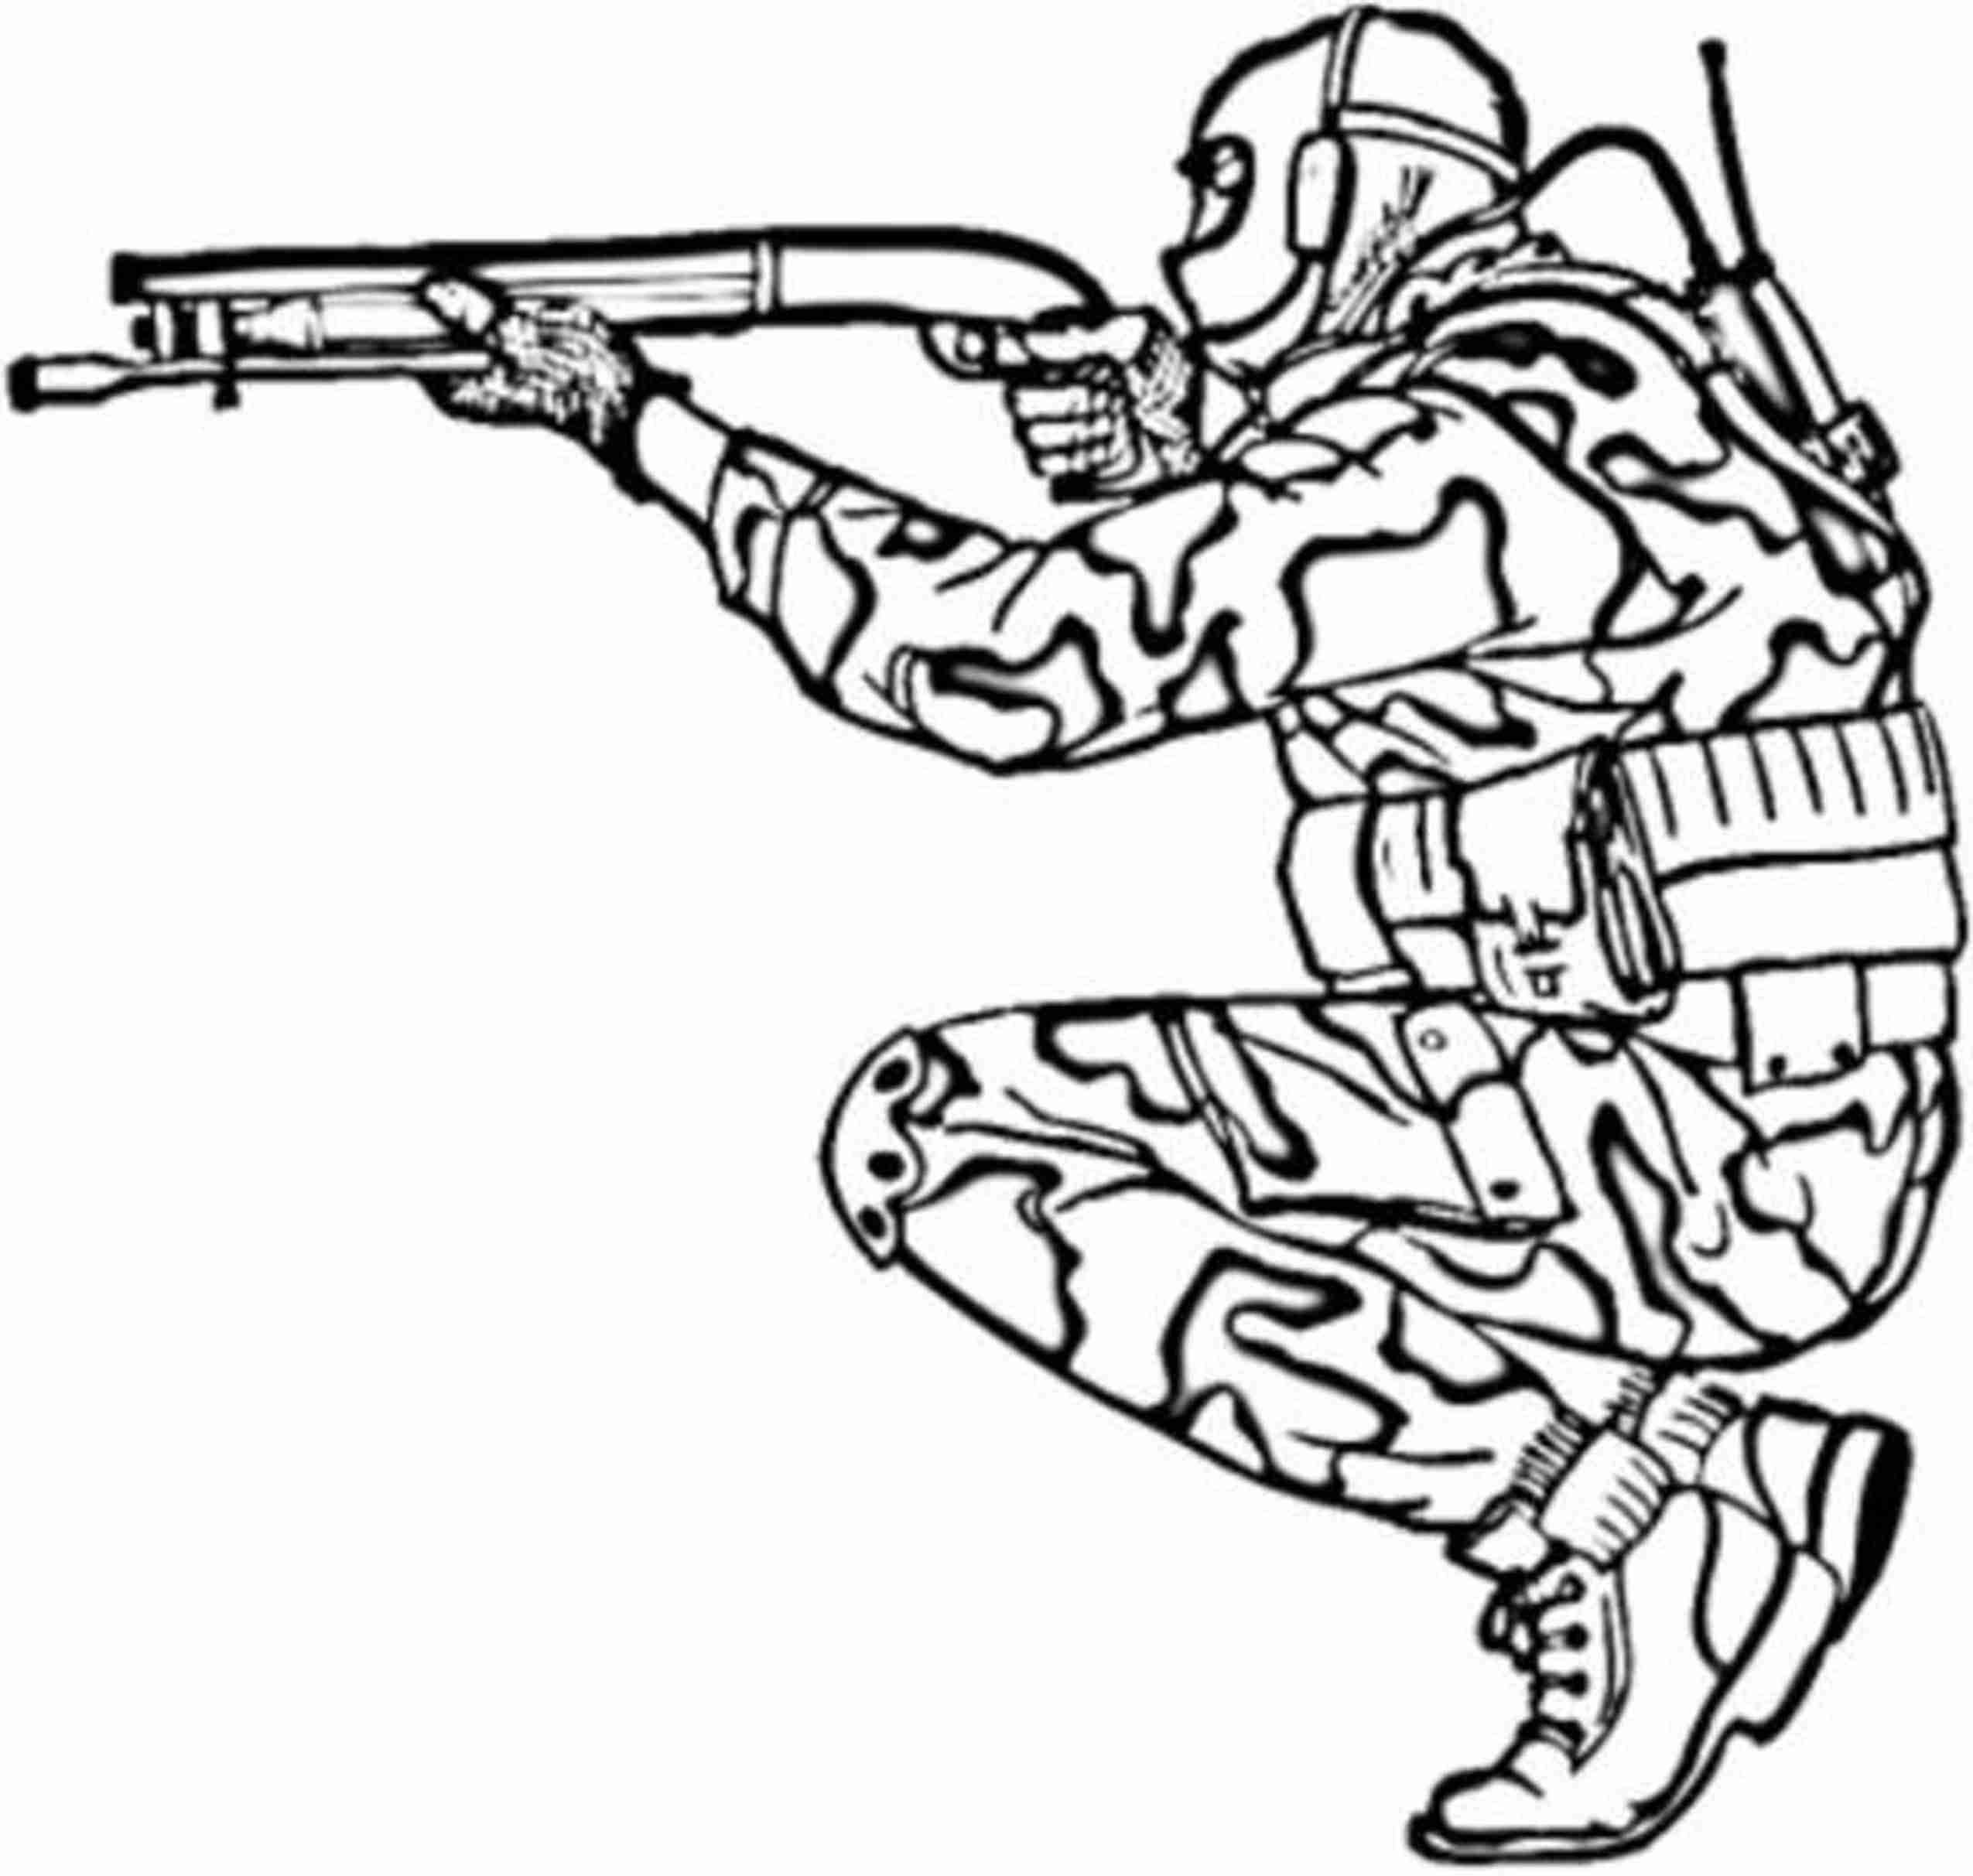 2550x2425 Coloring Pages For Army New Lego Exceptional Olegratiy